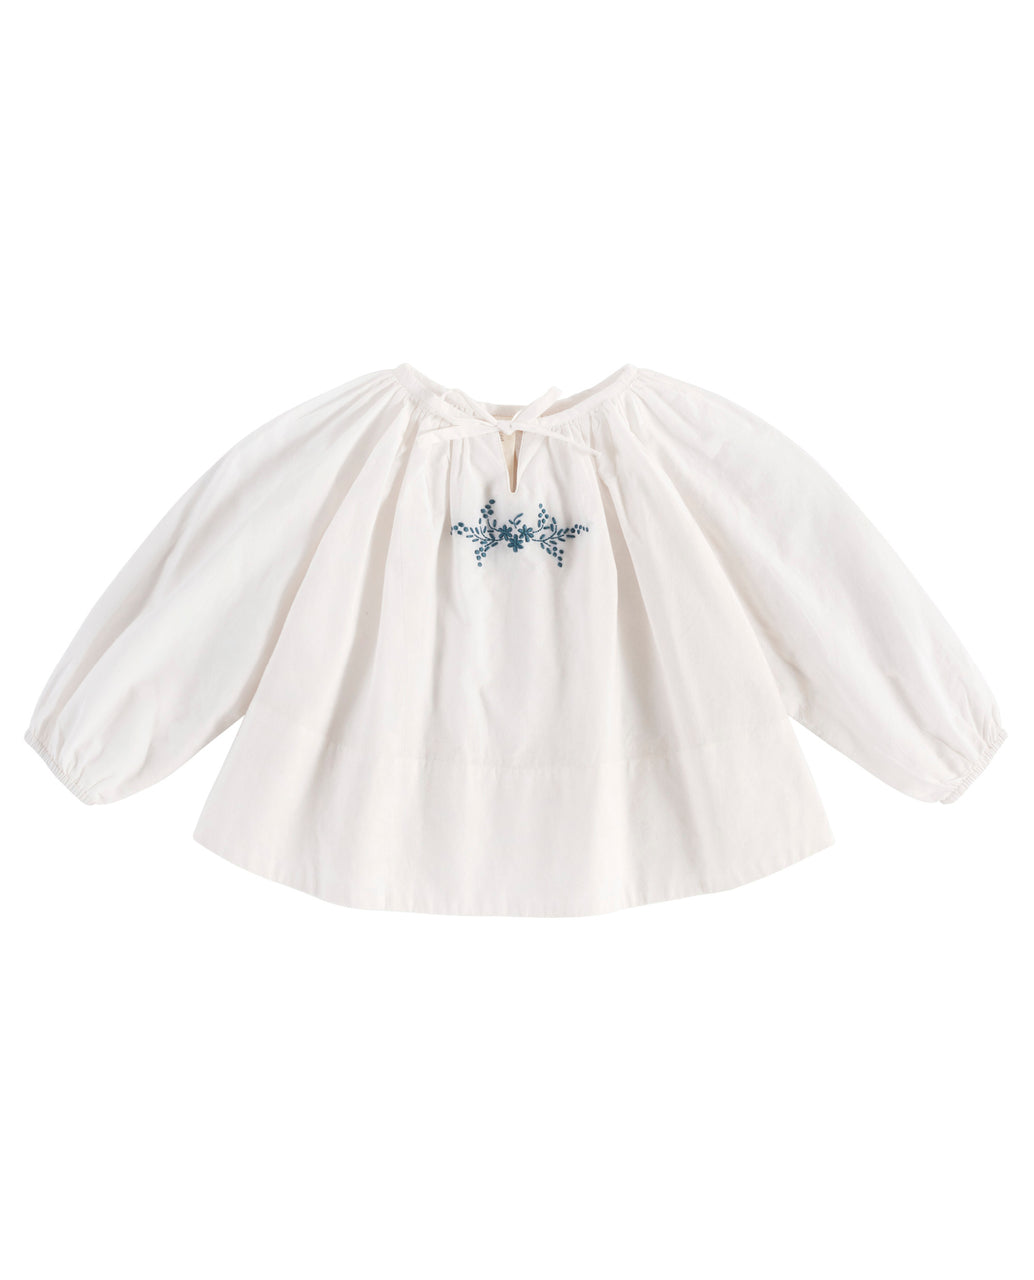 Olive blouse - off-white cotton with embroidery